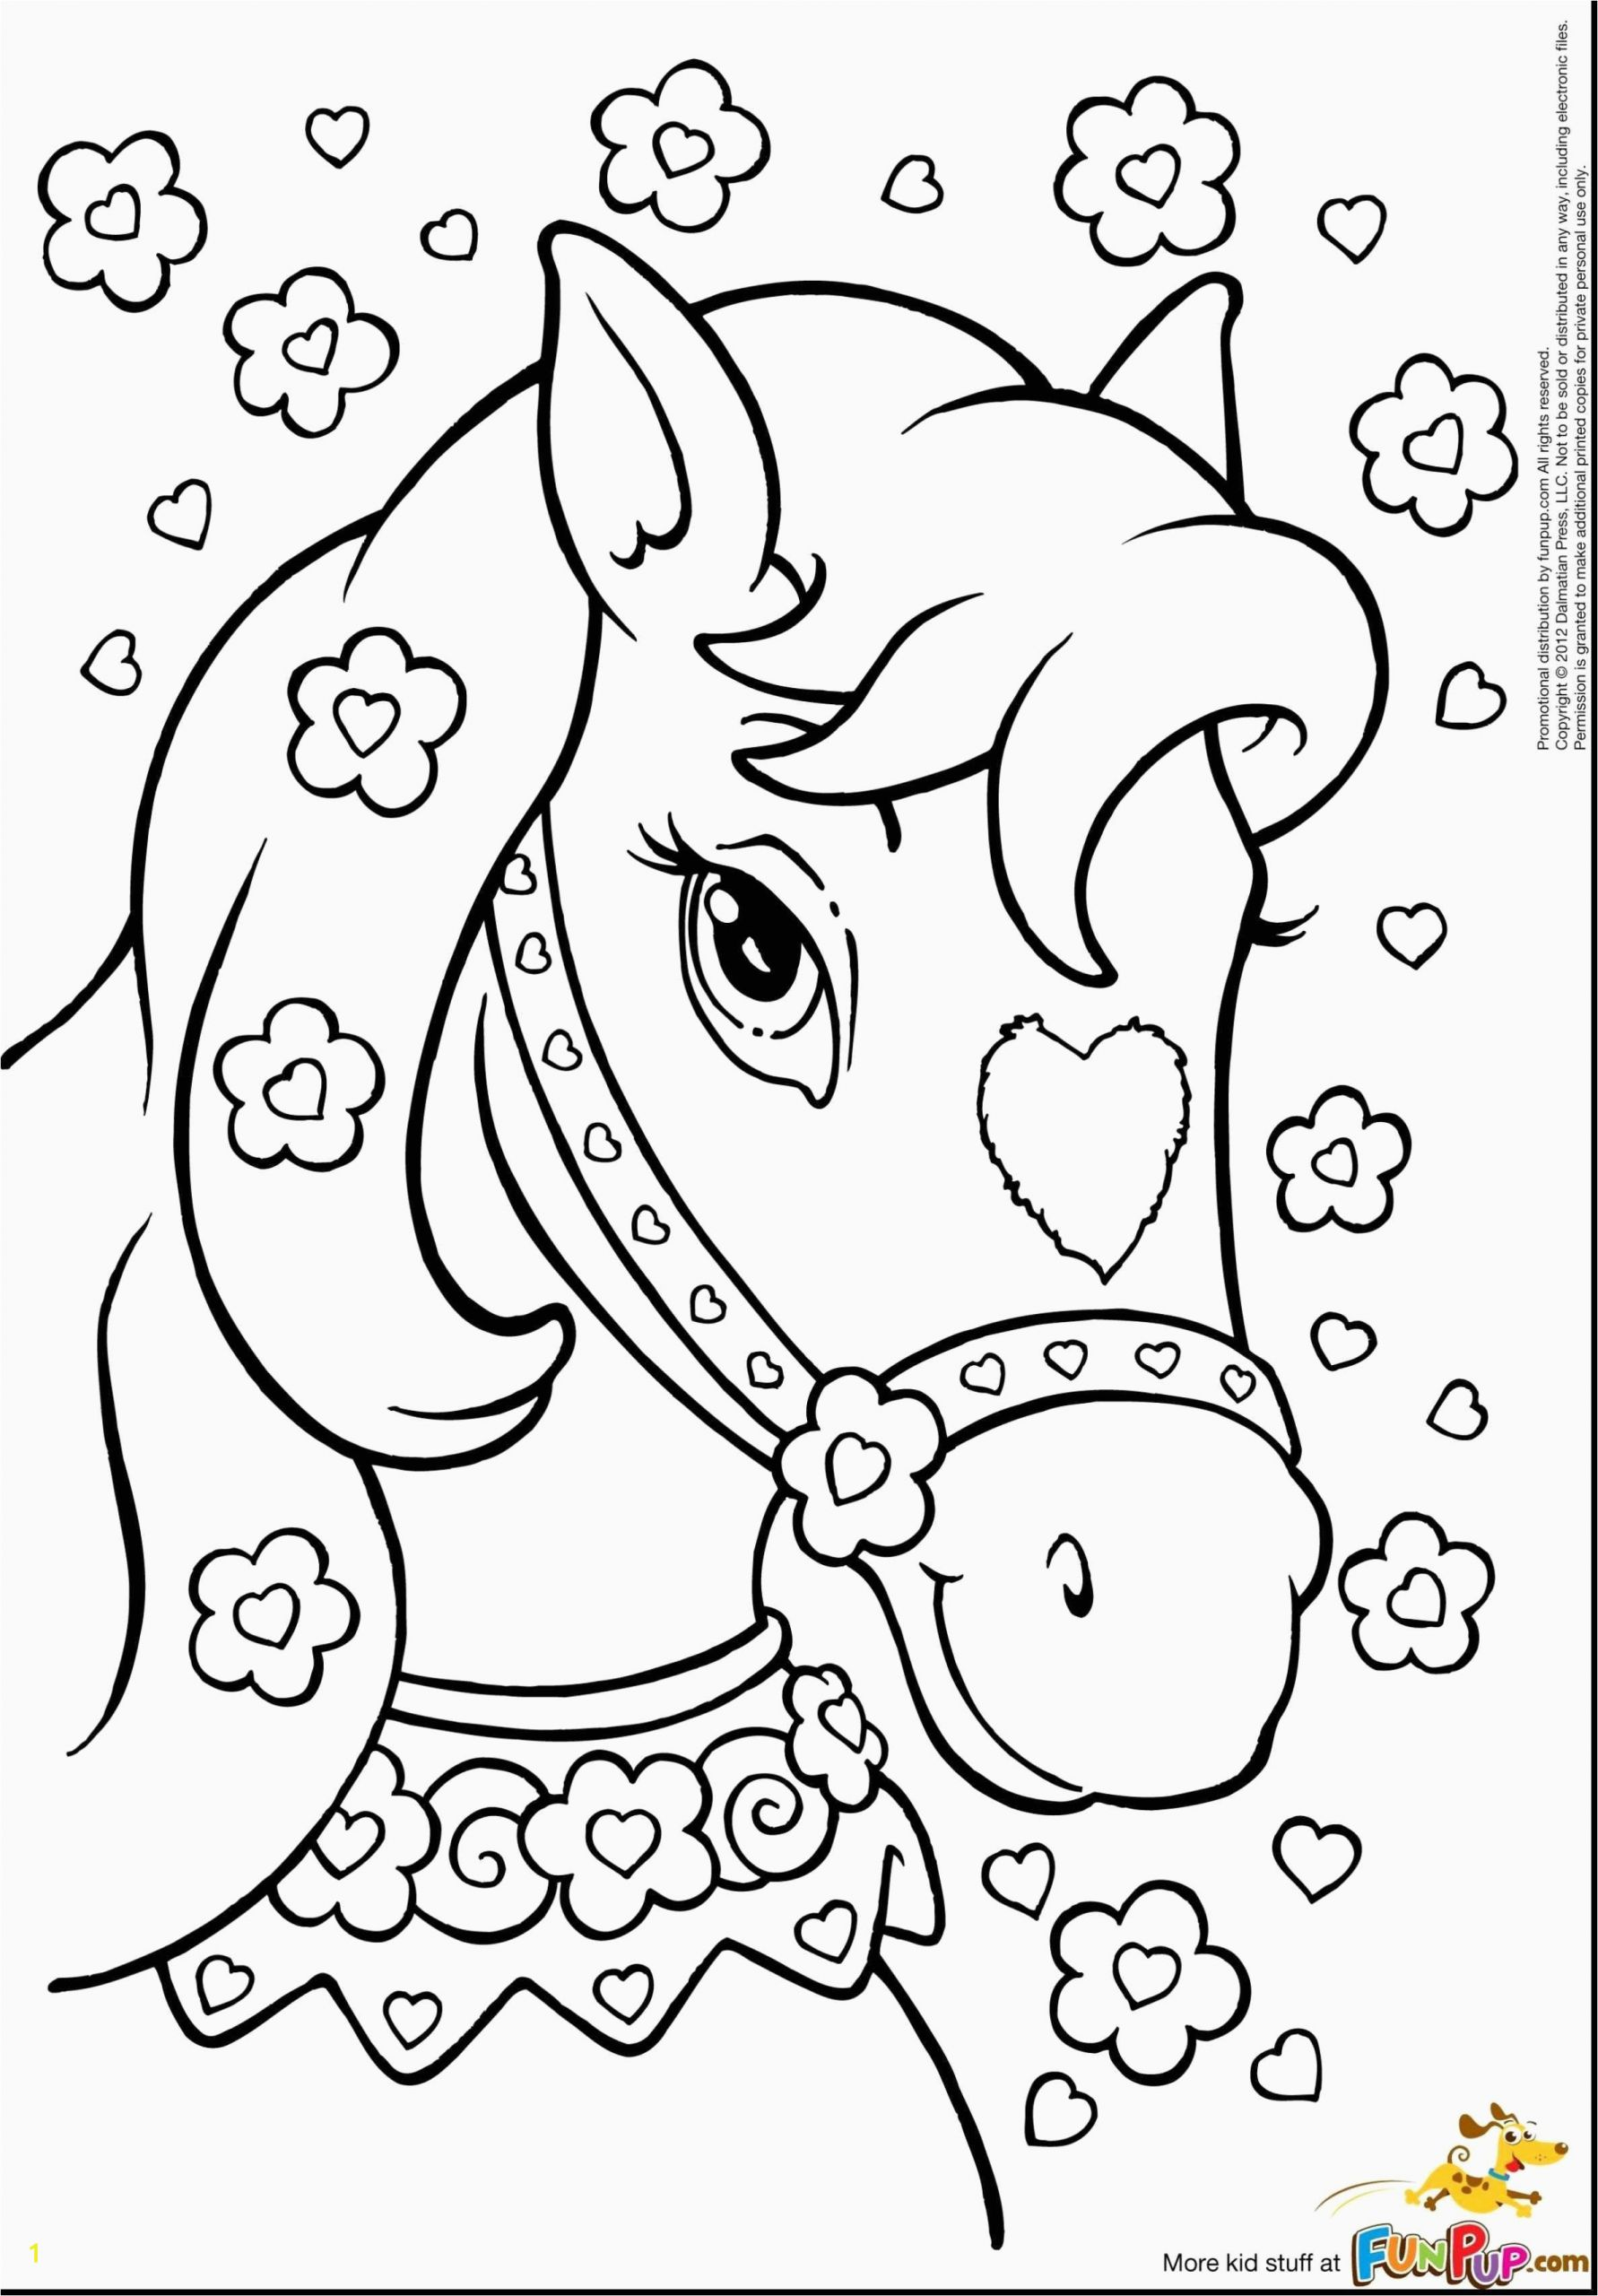 Princess and Unicorn Coloring Pages Coloring African Animals Beautiful Disney Princesses